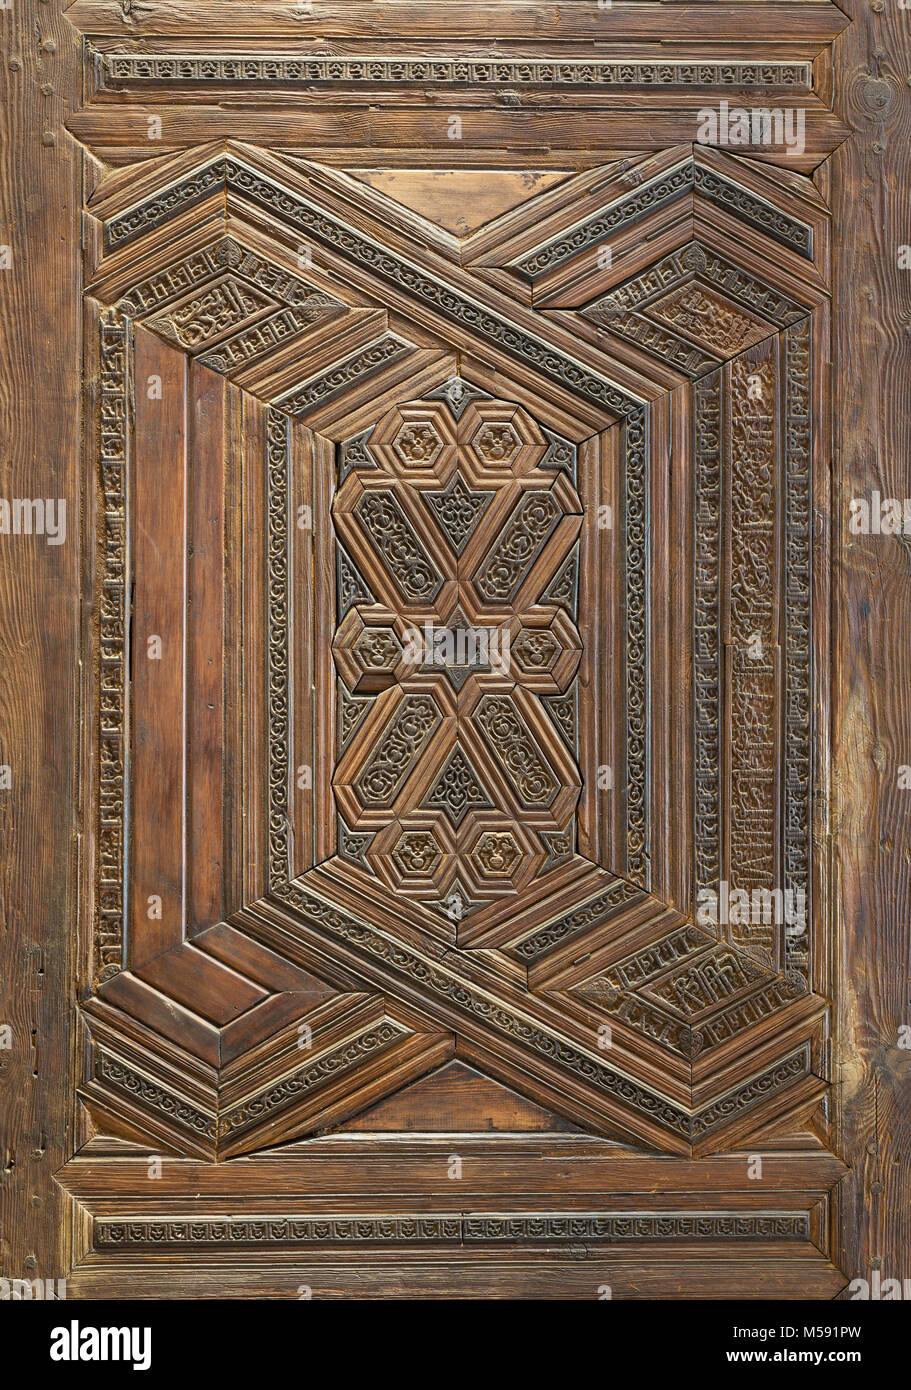 Geometrical and floral engraved patterns of Mamluk style wooden ornate door leaf of Madrasa of Sultan Nagm al Din - Stock Image